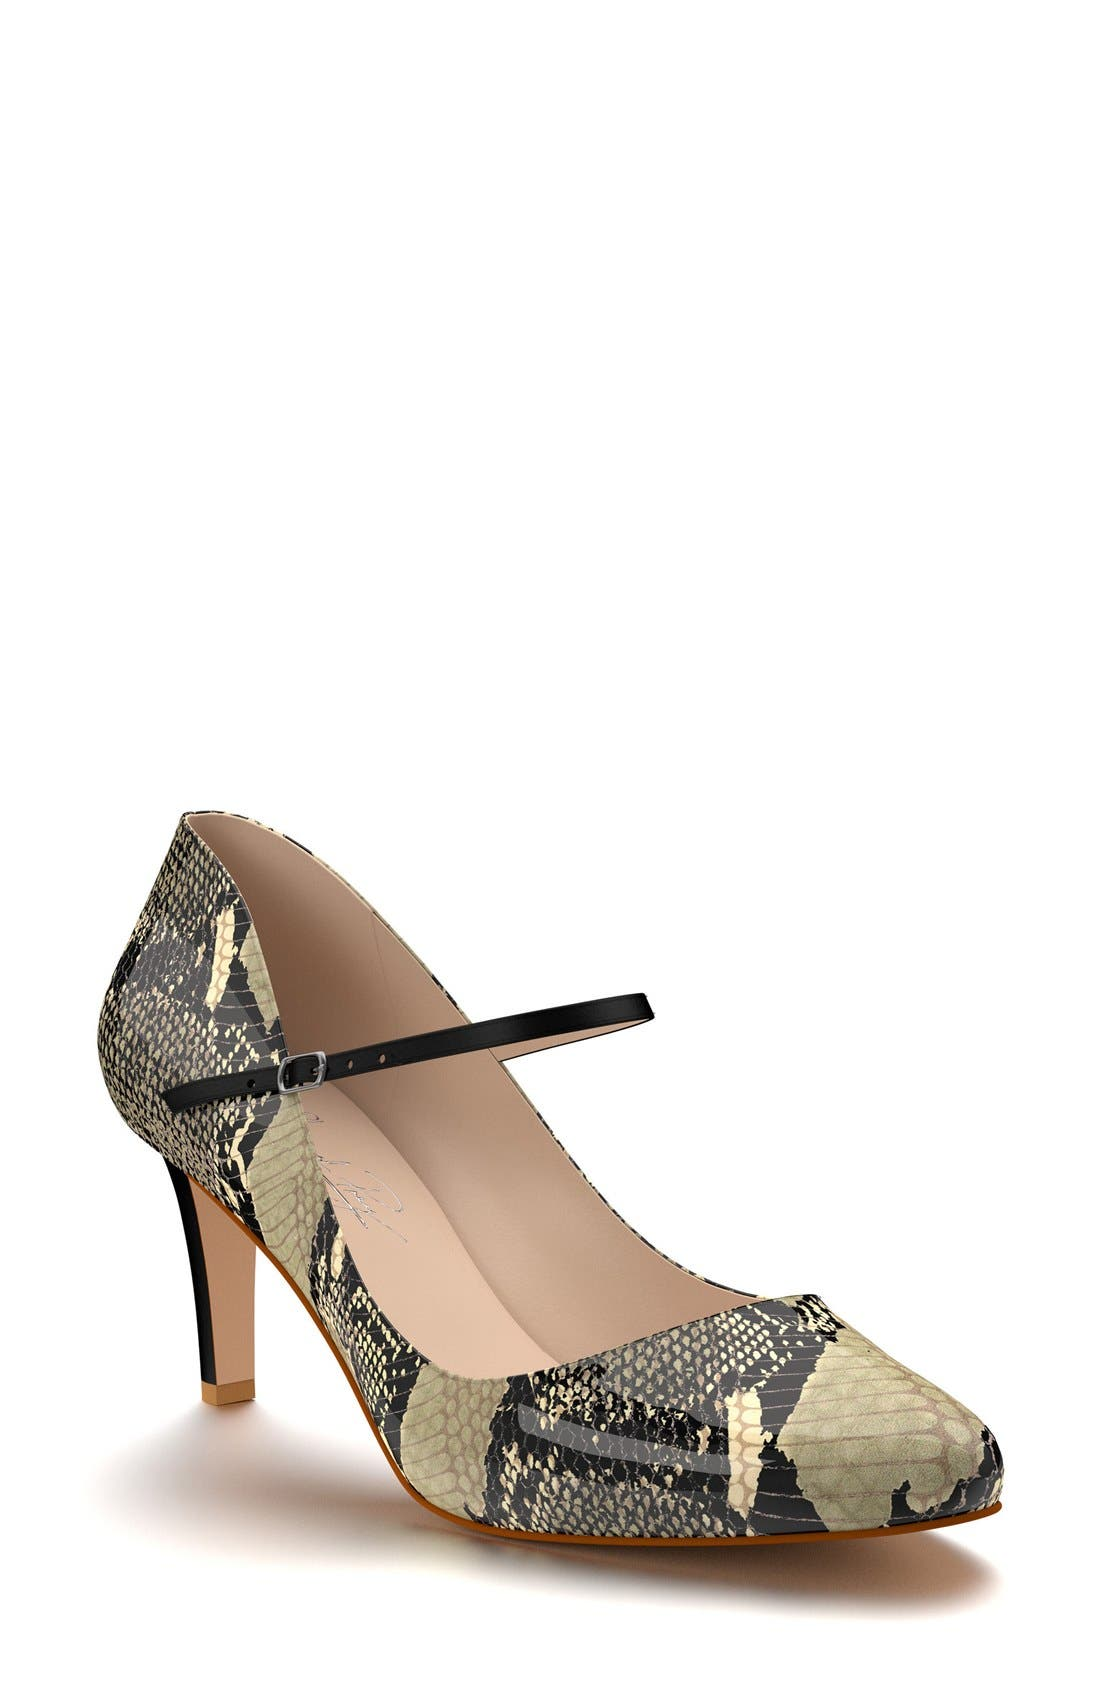 SHOES OF PREY Mary Jane Pump